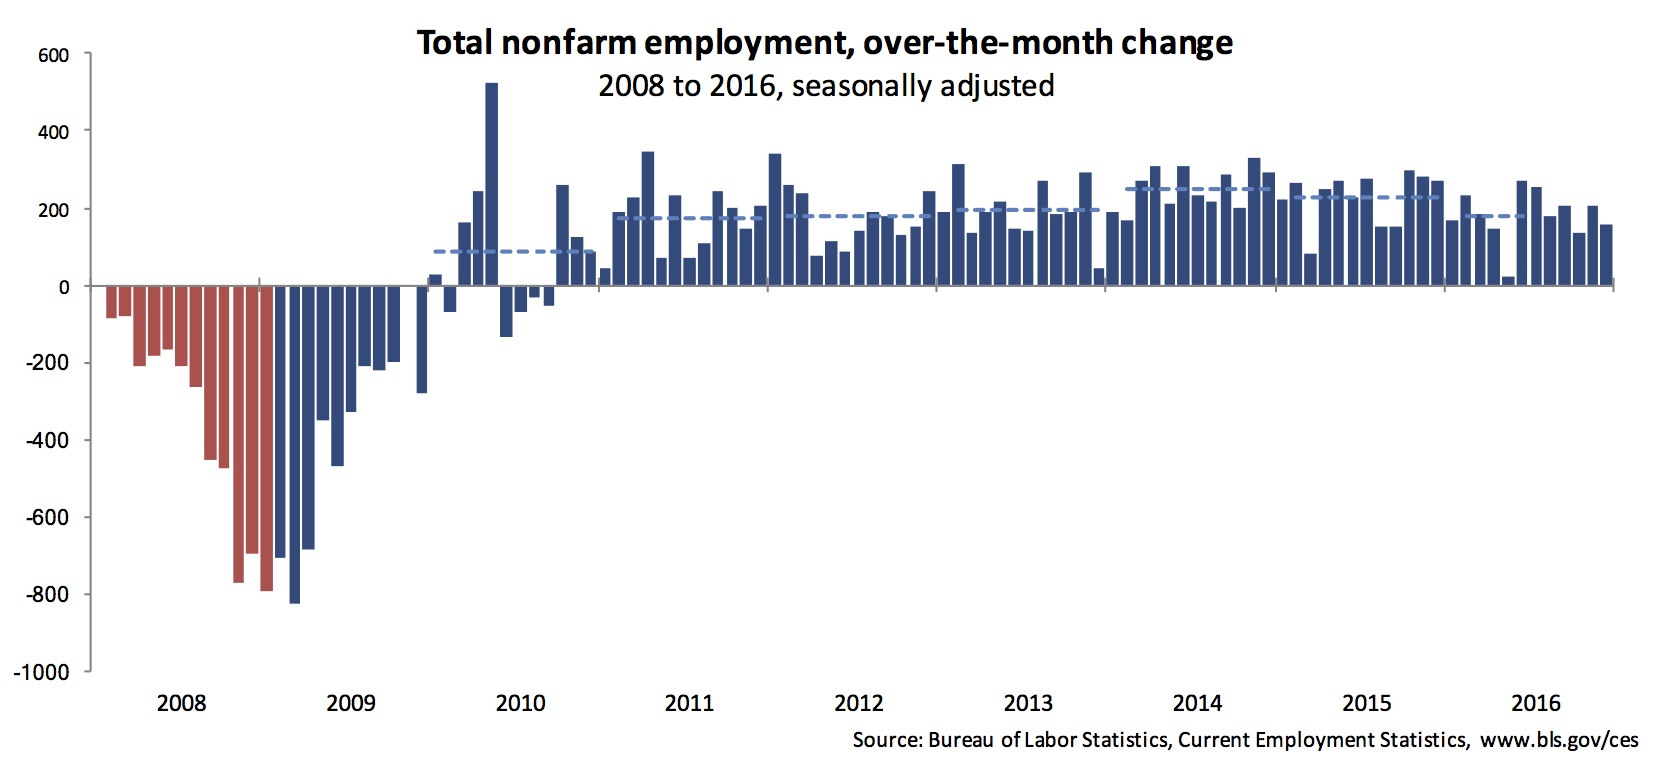 Total nonfarm employment, over-the-month average.